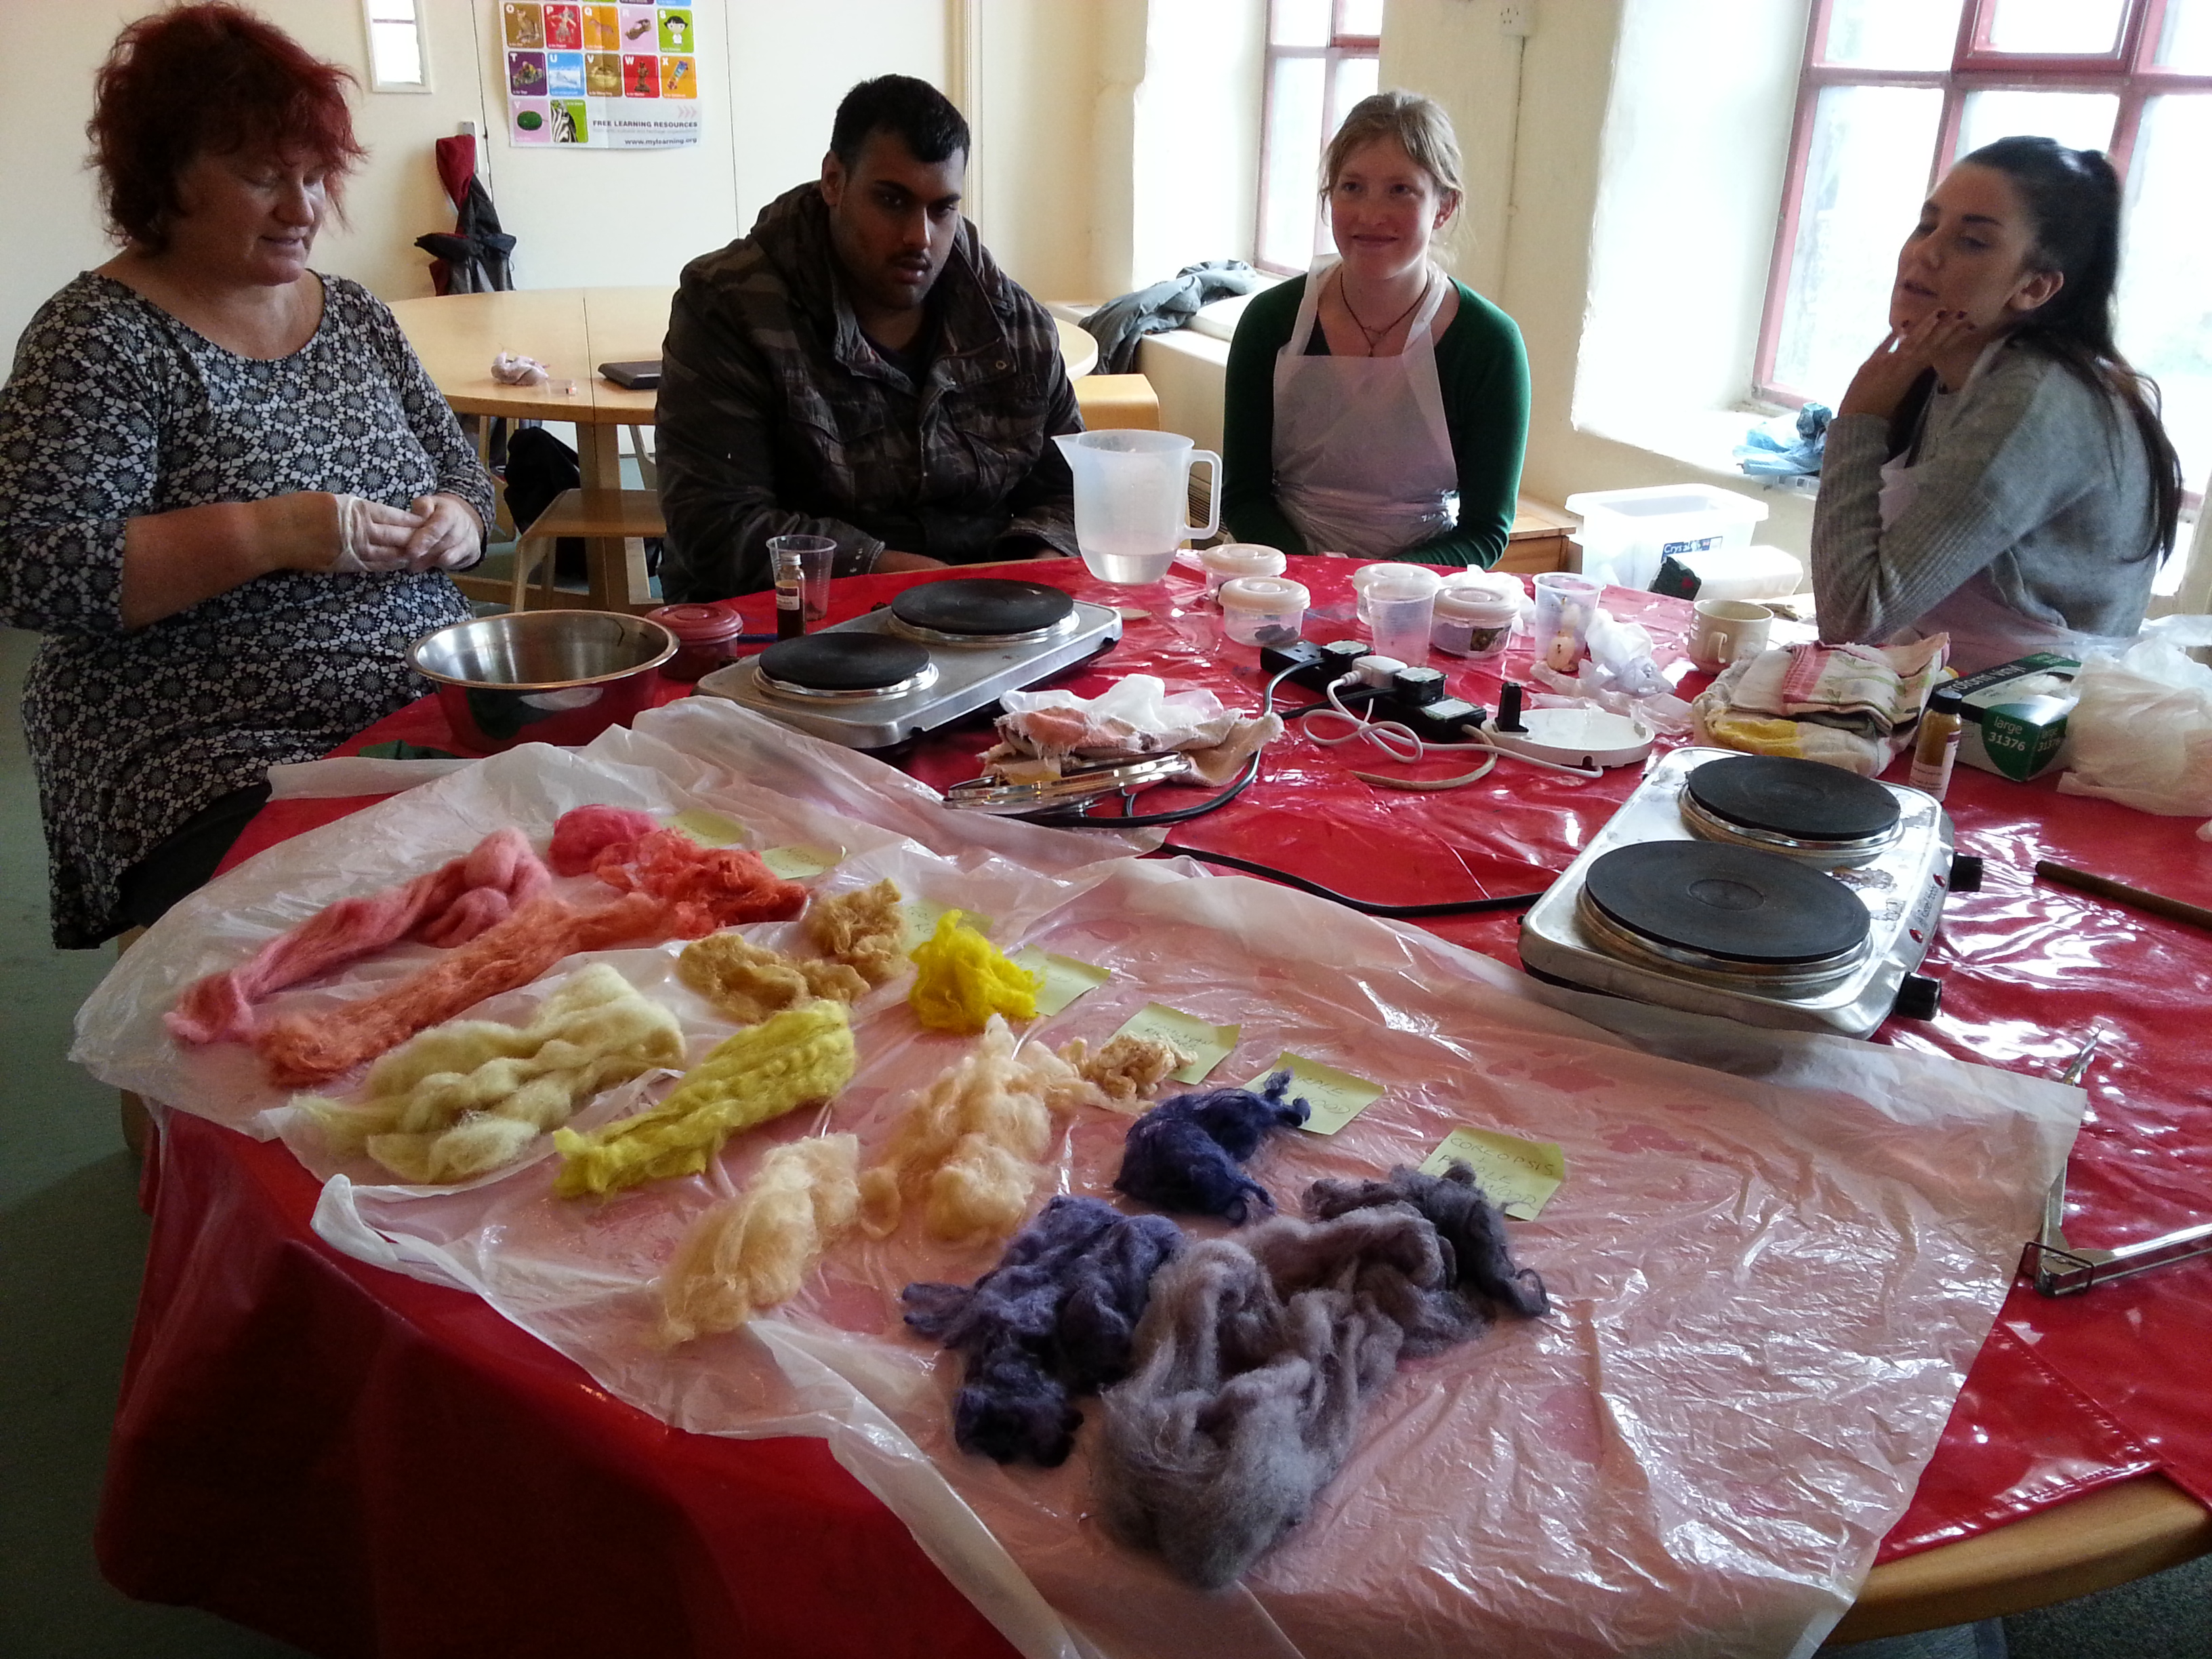 Community natural dyeing session at Armley Mills with Debbie Tomkies of Making Futures